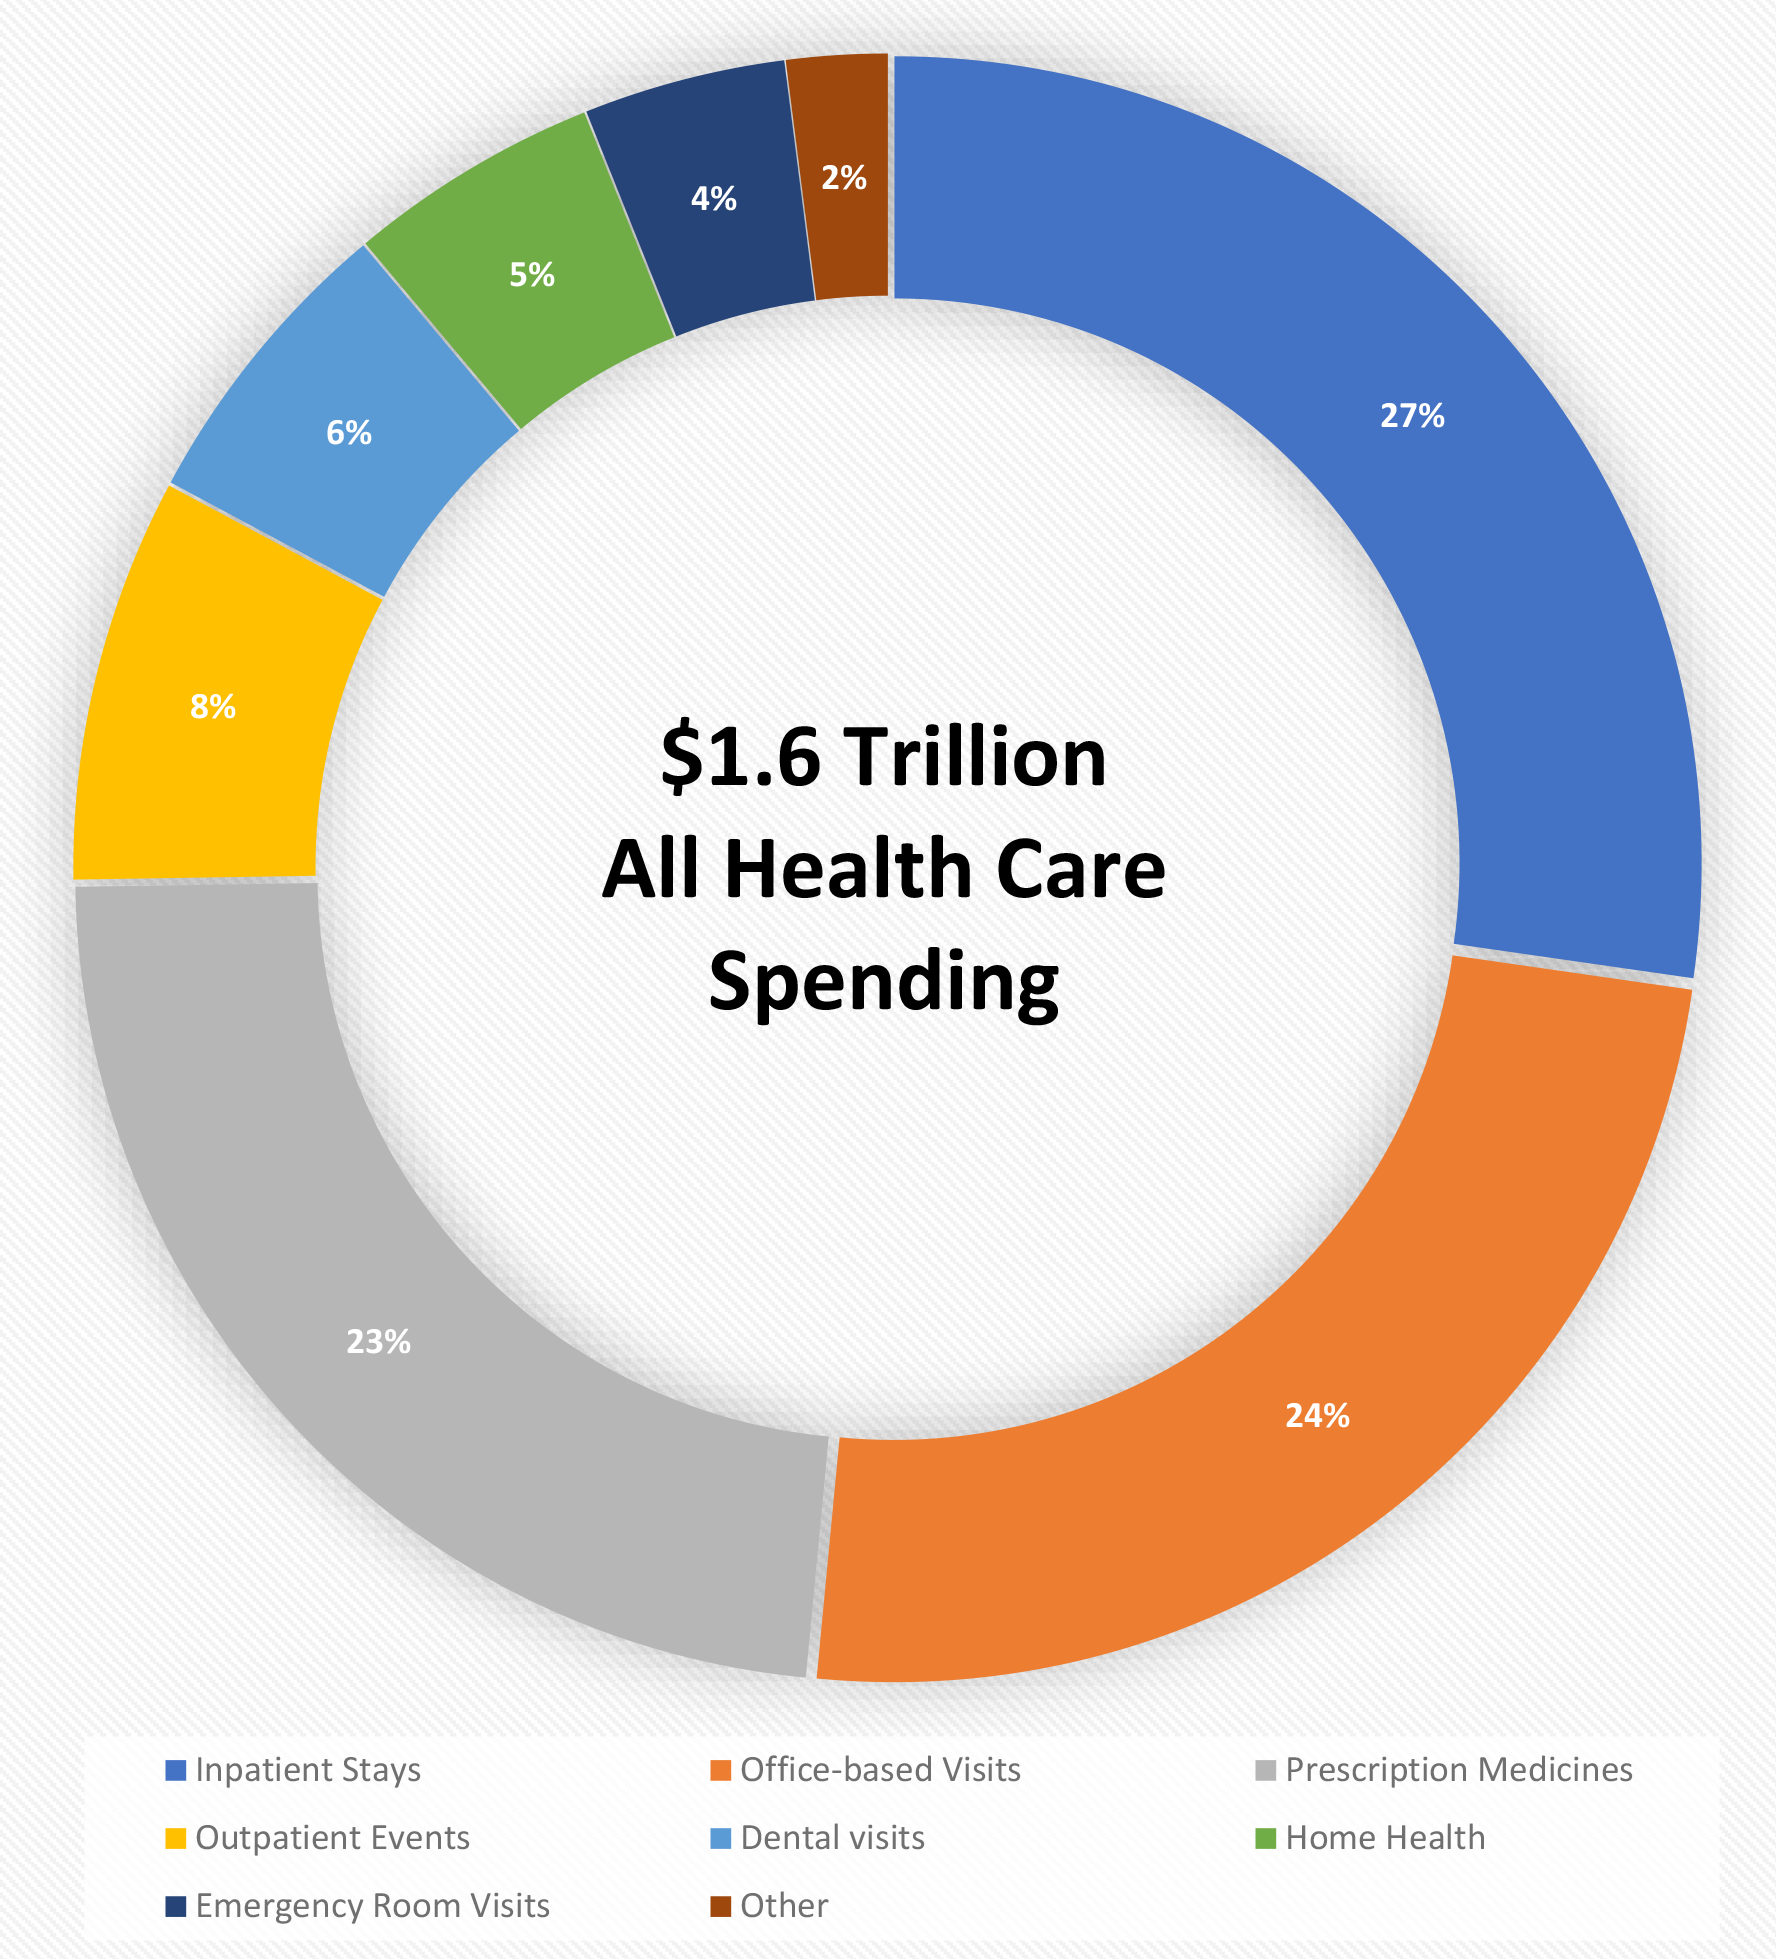 2015 Health Care Spending Pie Chart